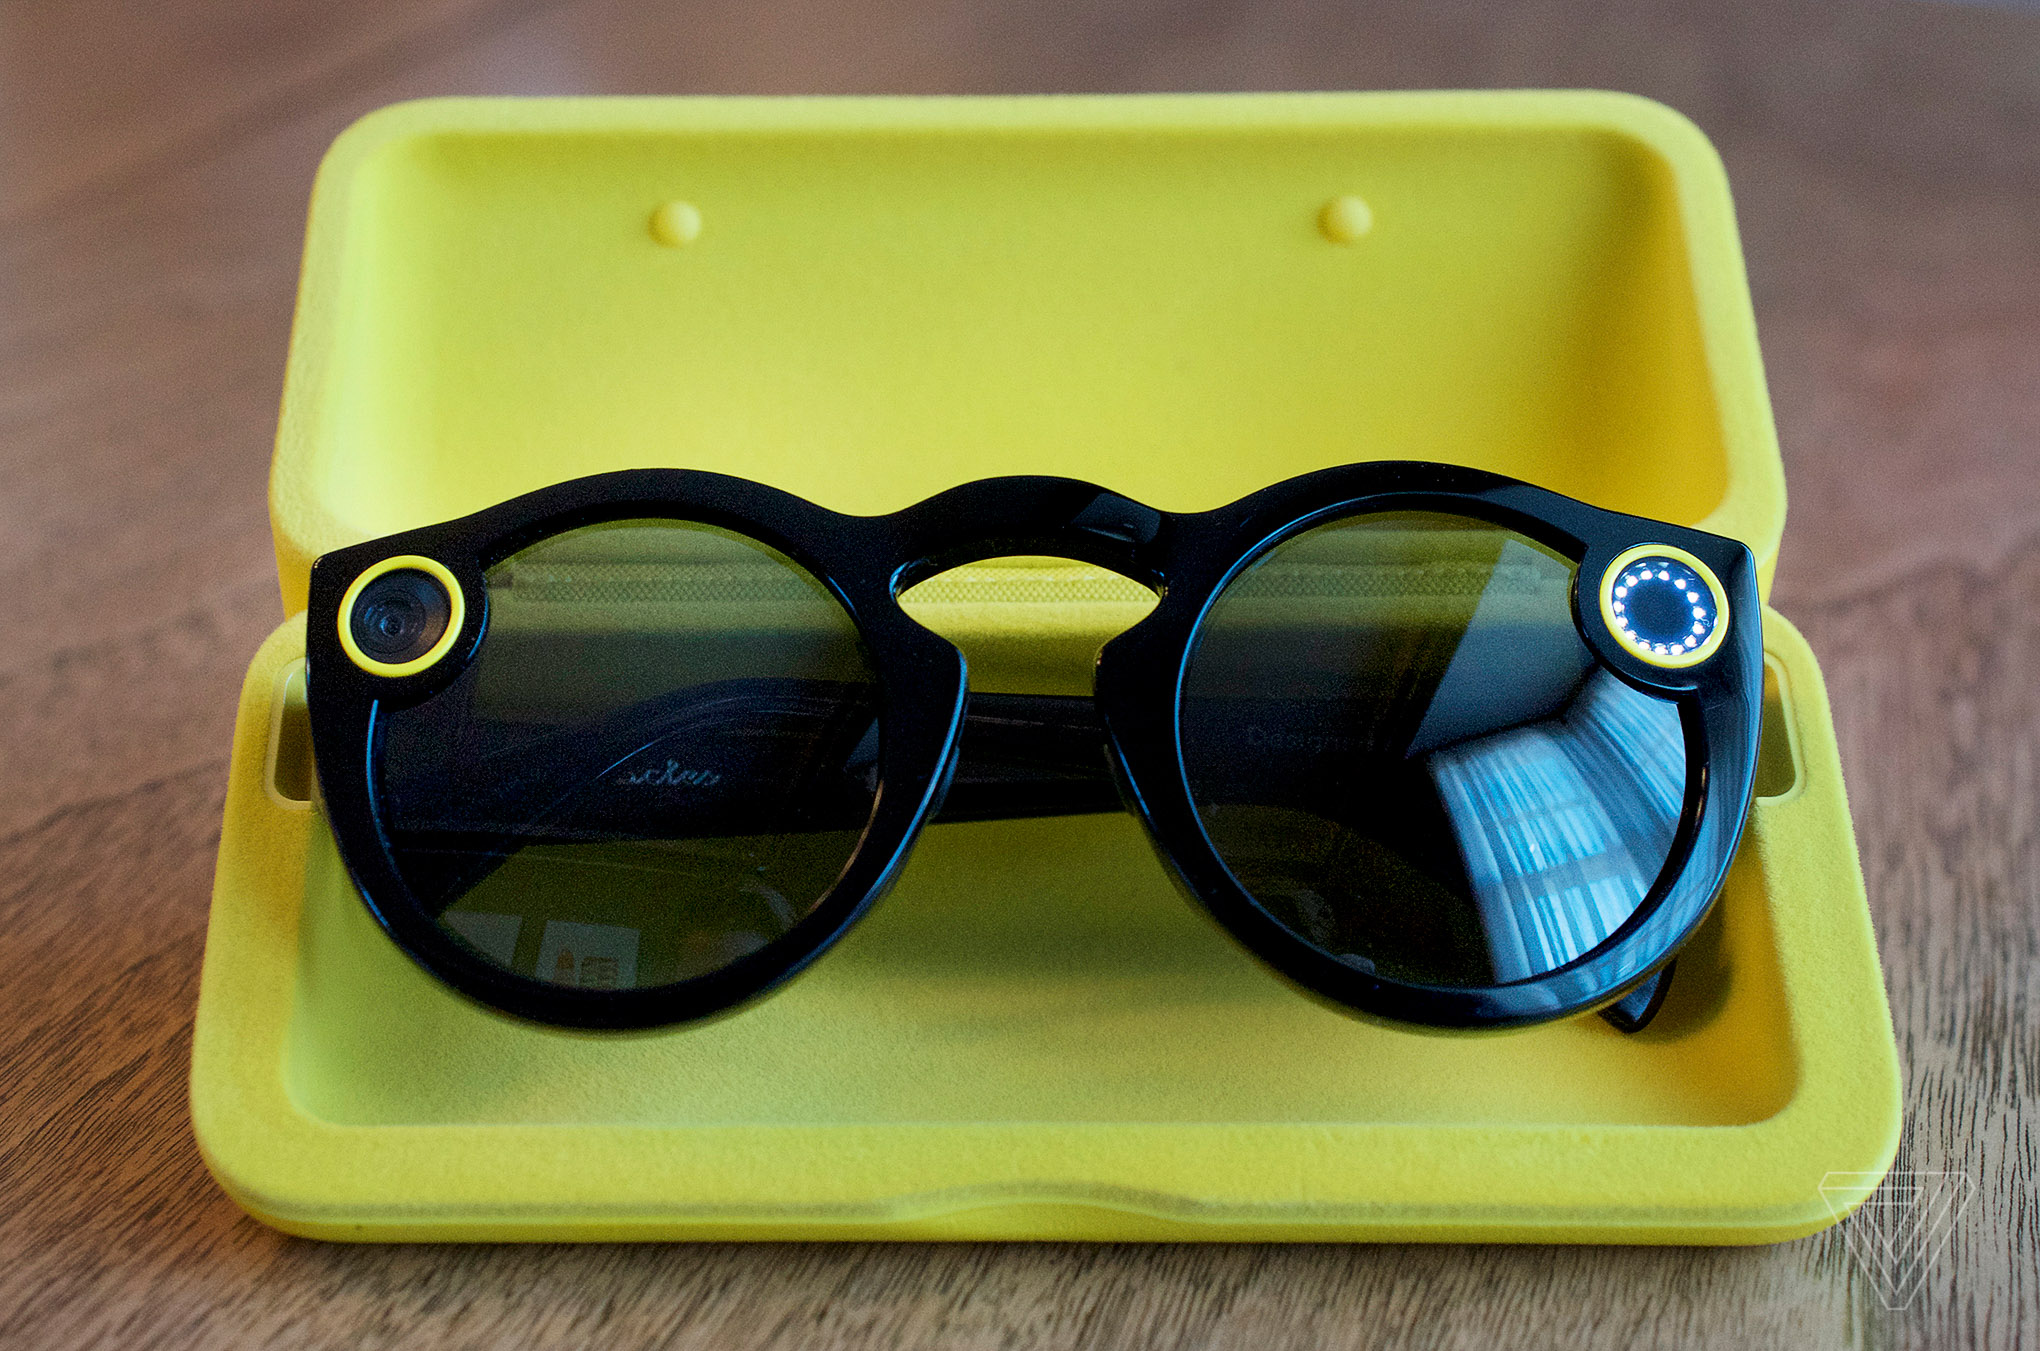 57e02a4d437 Snapchat Spectacles are here and they are ridiculously fun - The Verge